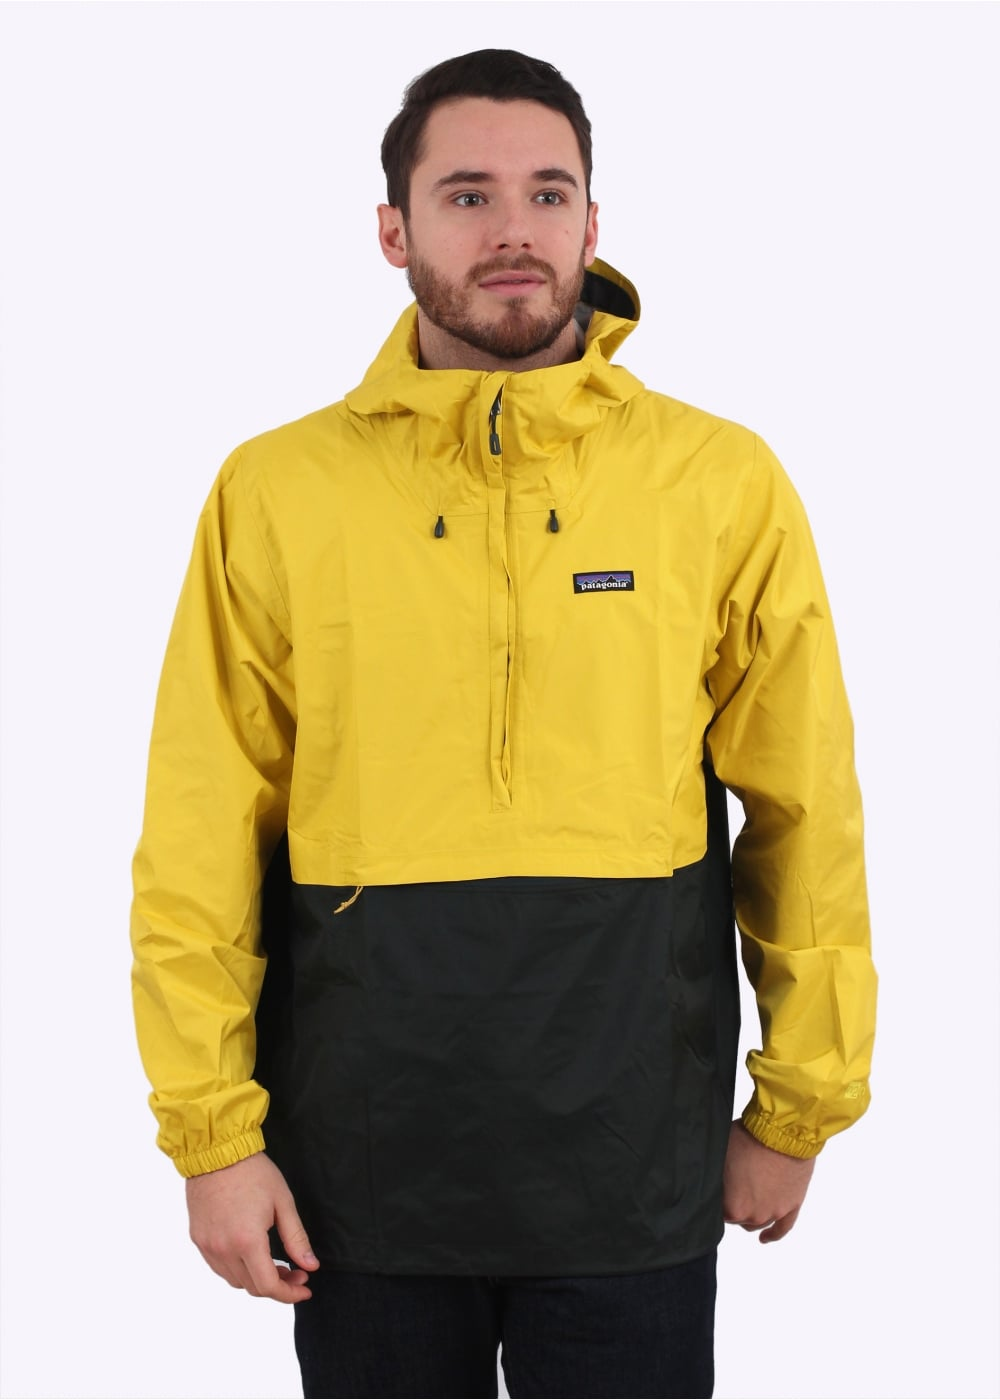 Patagonia Torrentshell Pullover Jacket - Yosemite Yellow - Jackets ...